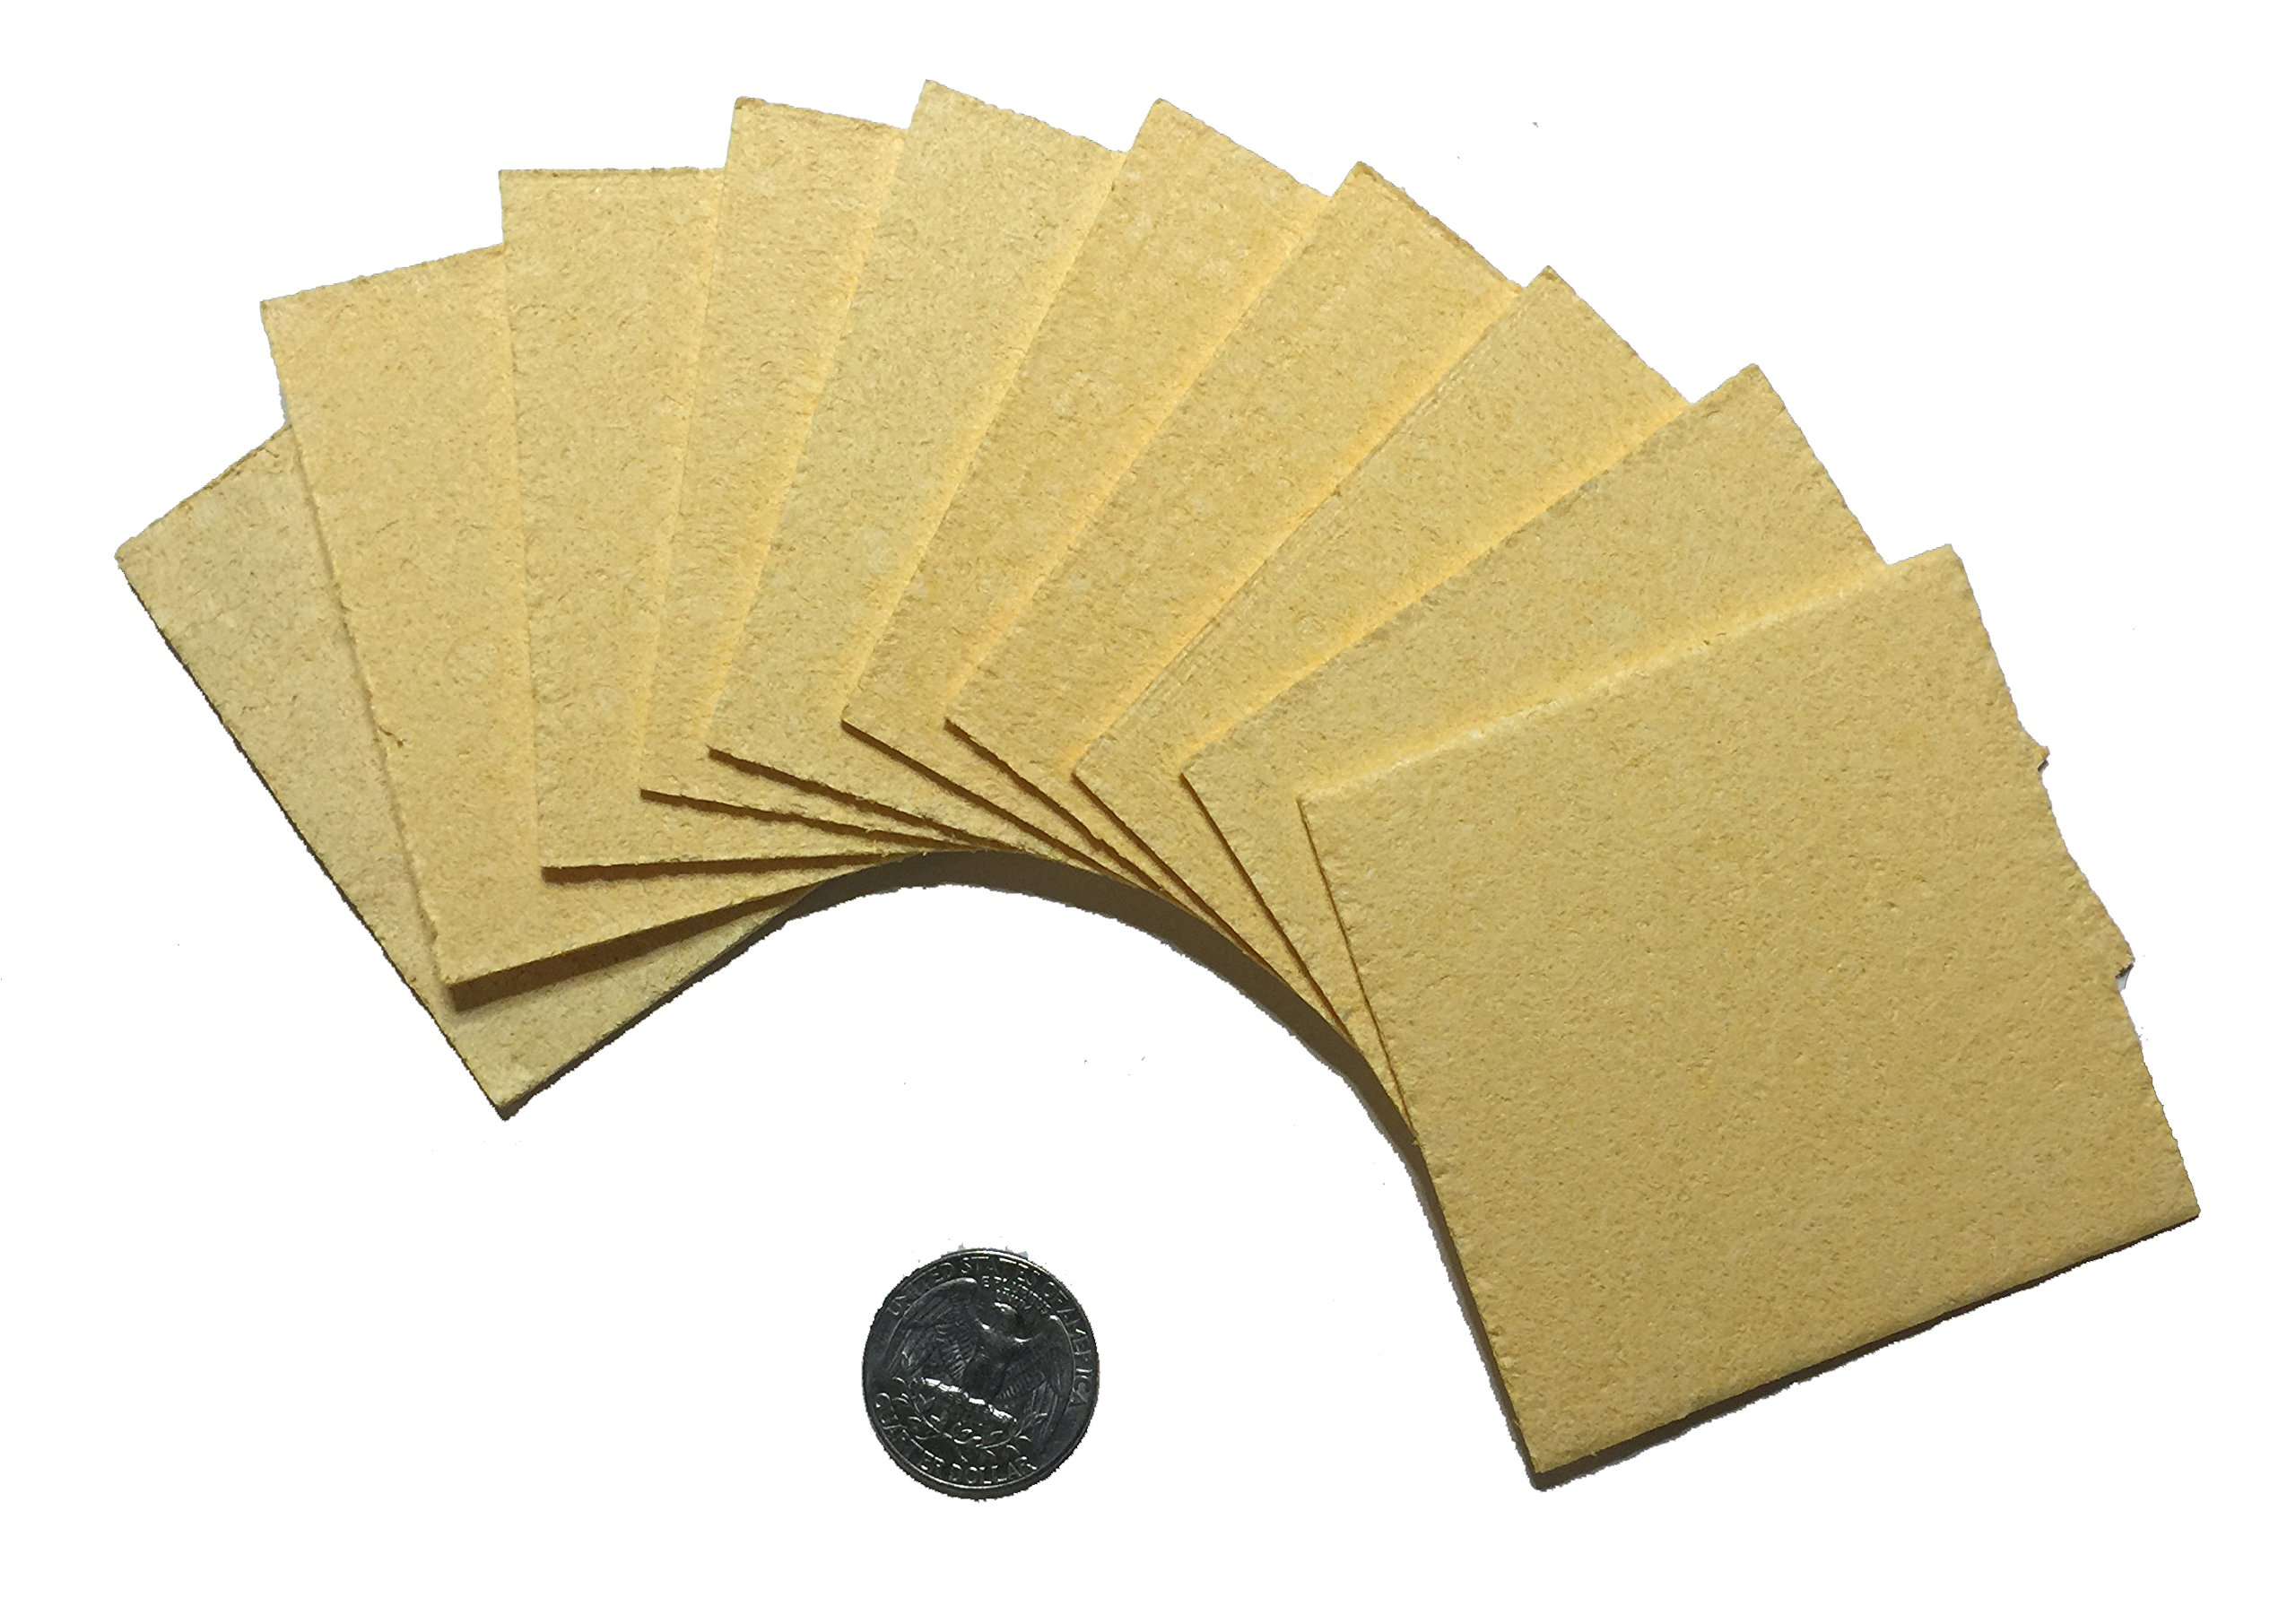 Amrex 3''x3'' Sponge Insert Replacements From Caputron (10 inserts/pack)